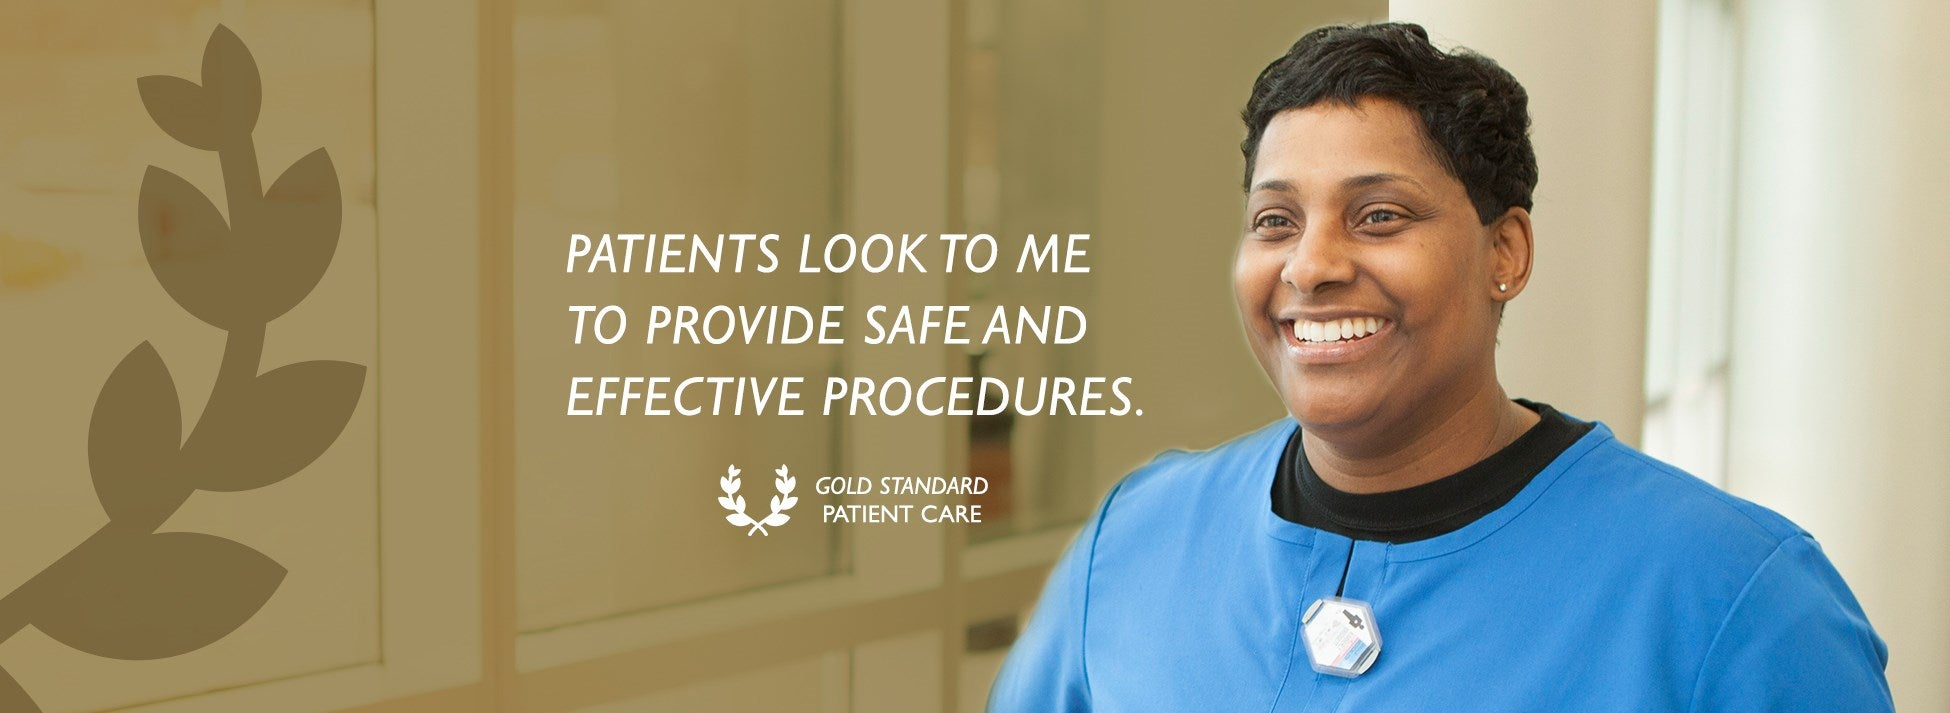 Gold Standard Patient Care - Safe and Effective Procedures